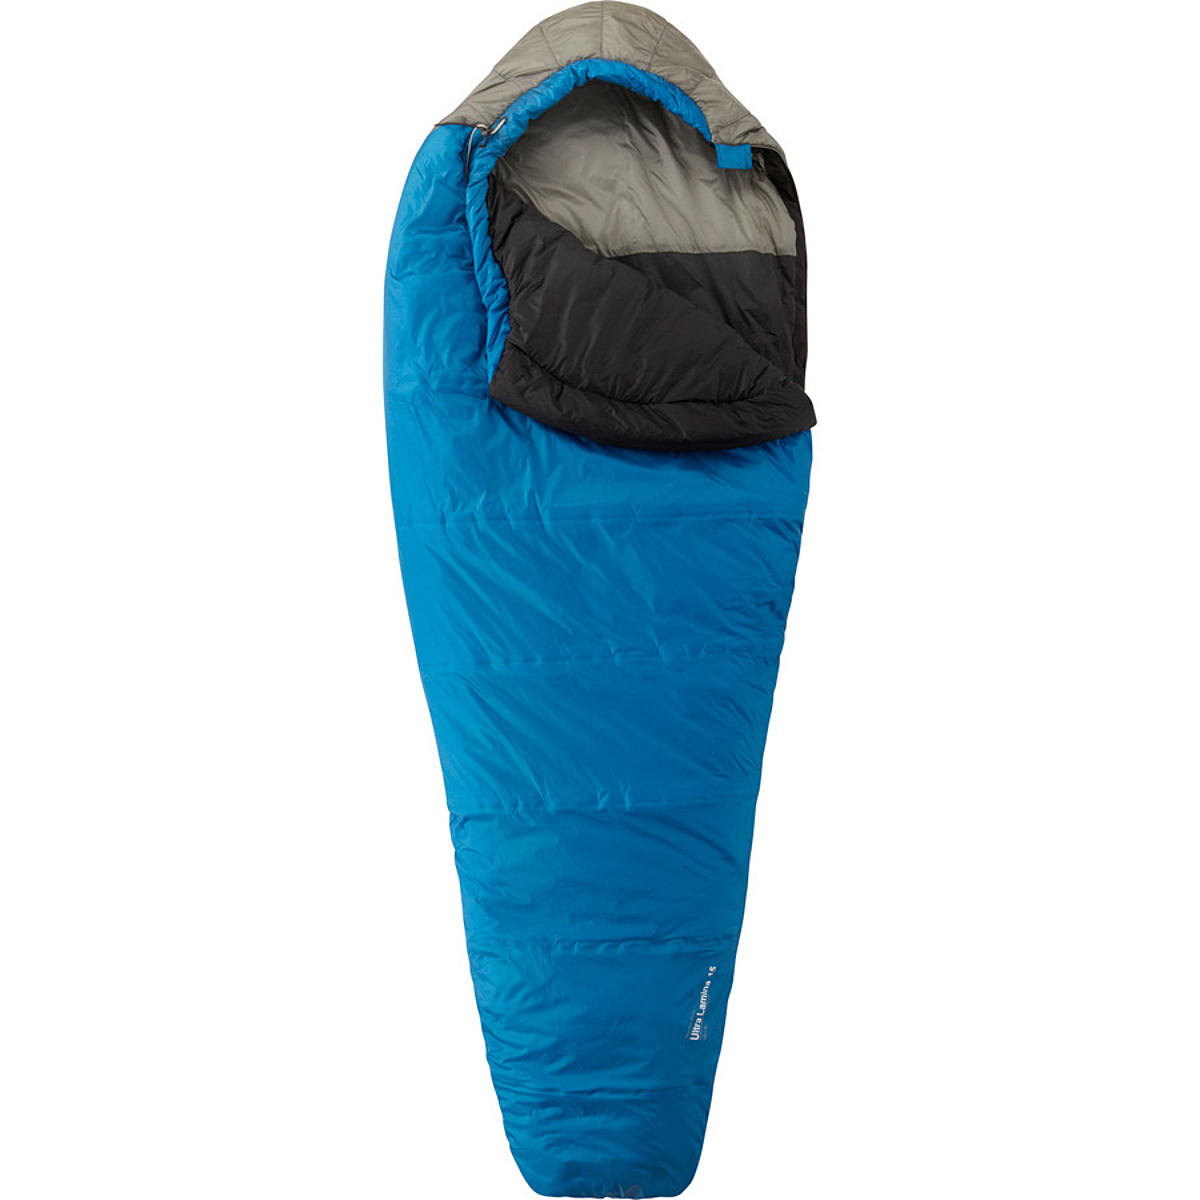 photo: Mountain Hardwear Men's UltraLamina 15° 3-season synthetic sleeping bag